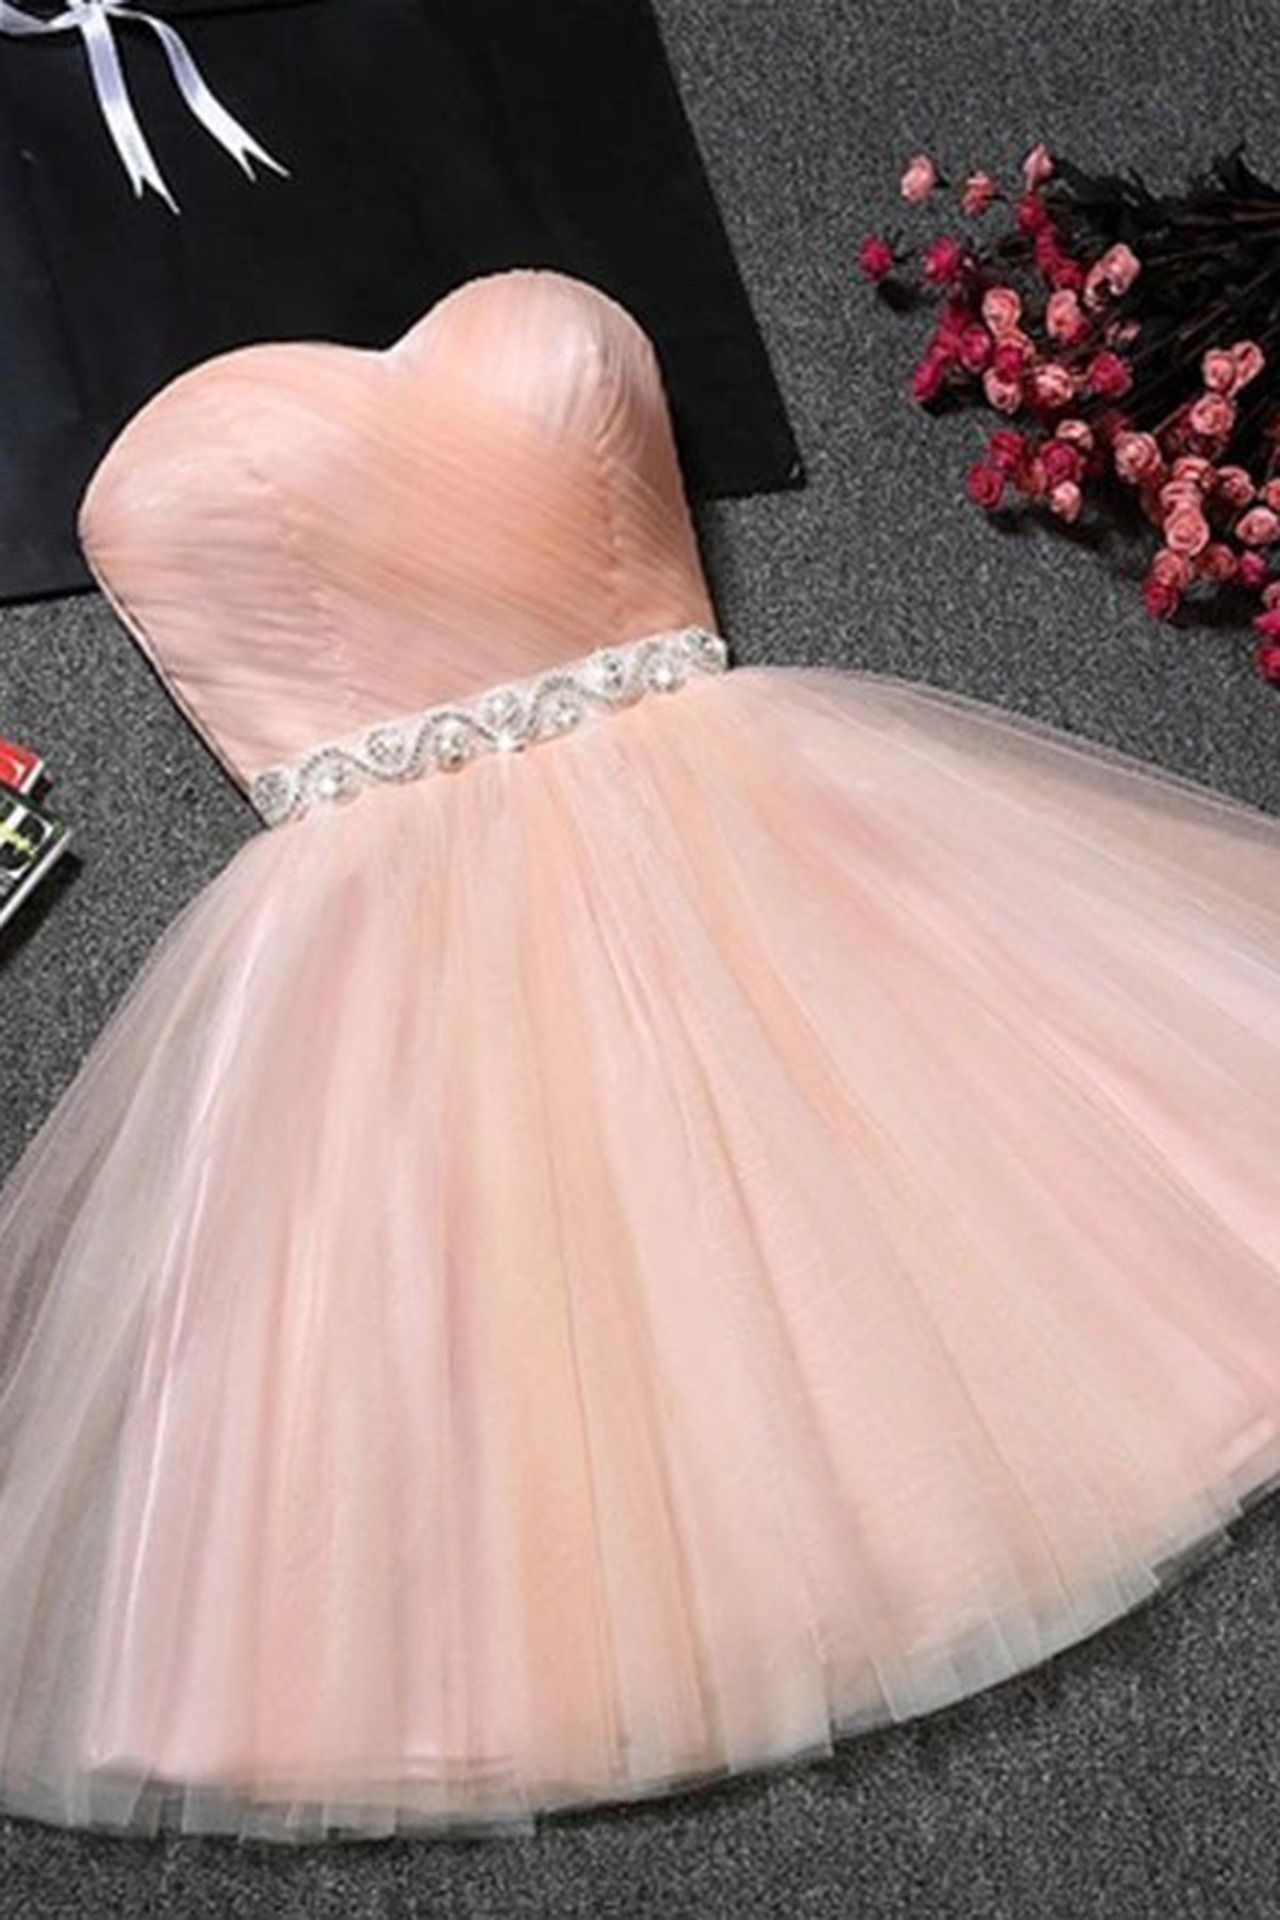 Cute pink tulle sweetheart prom dress short prom dress for teens